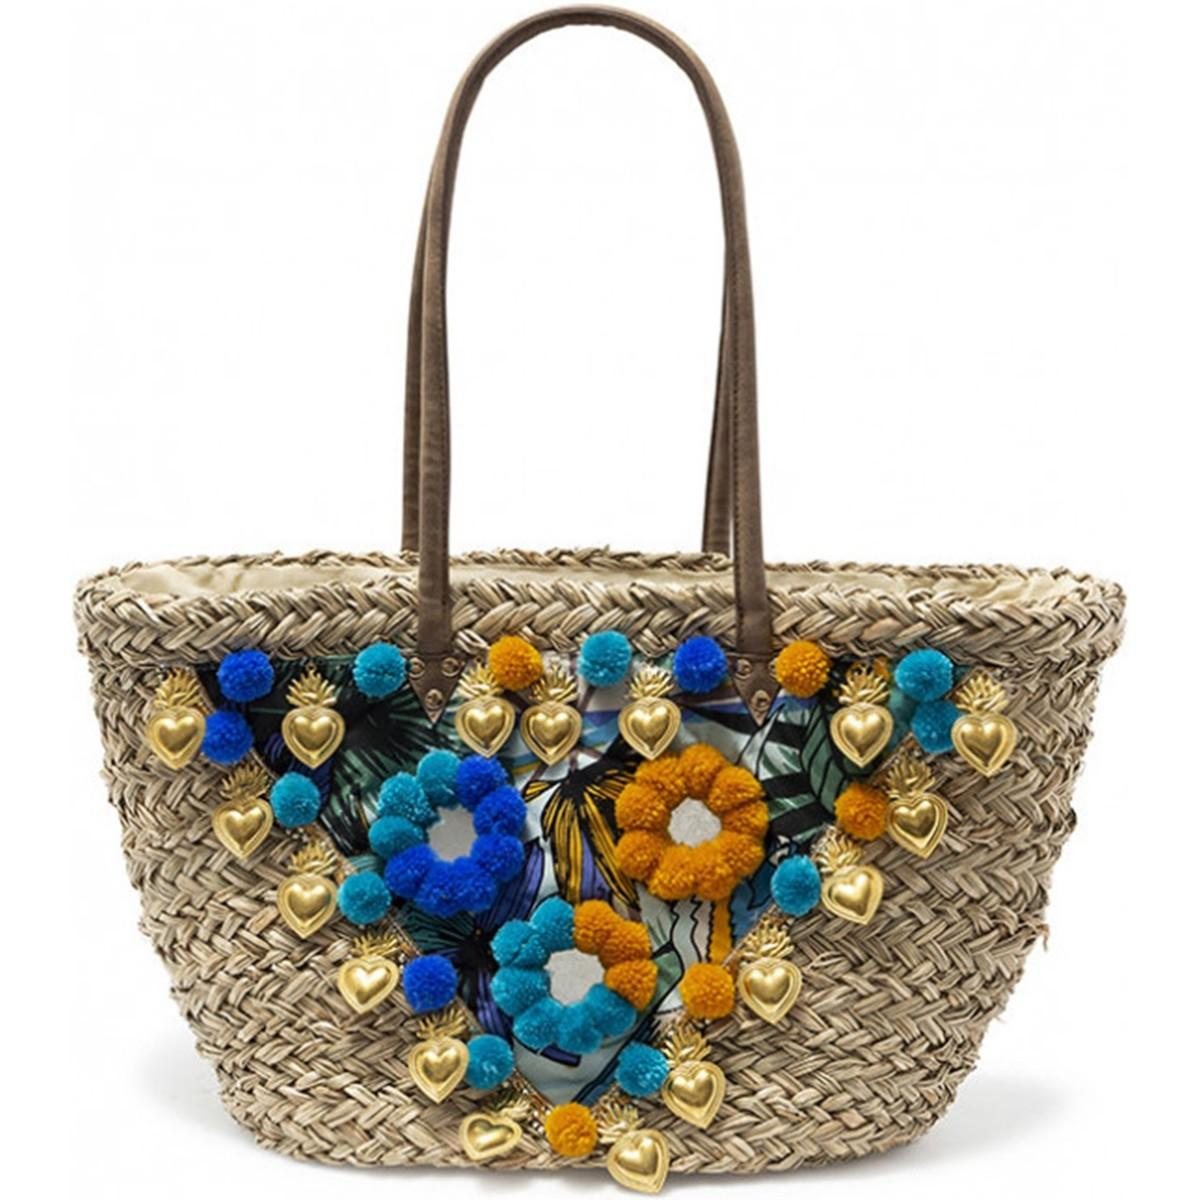 7aadf3b6ae Amenapih Straw Bag Embroidered , Blue - Lavezzi Women's Shopper Bag ...